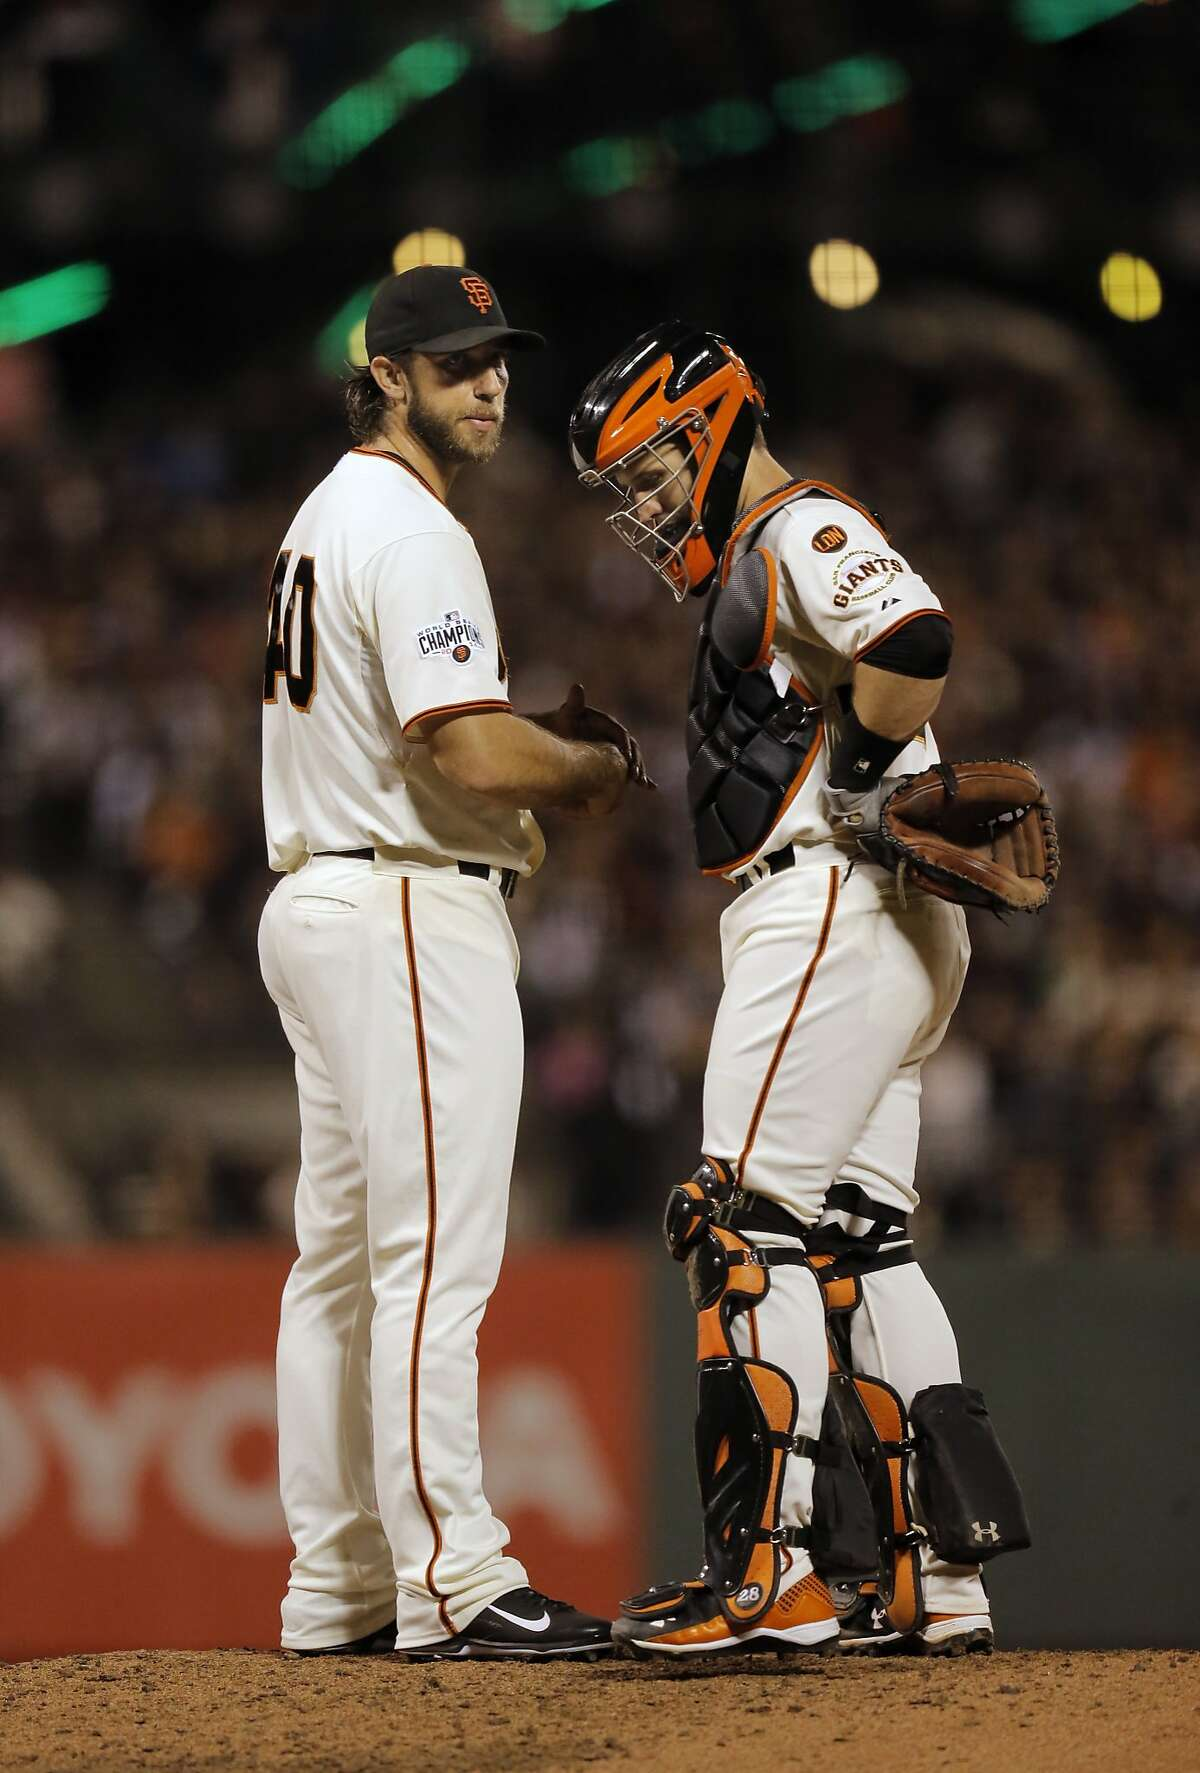 Giants' starting pitcher Madison Bumgarner is visited by catcher Buster Posey after giving the first of what would be two home runs to the Dodgers in the 6th inning, as the San Francisco Giants taker on the Los Angeles Dodger at AT&T Park in San Francisco, Calif., on Tues. September 29, 2015.